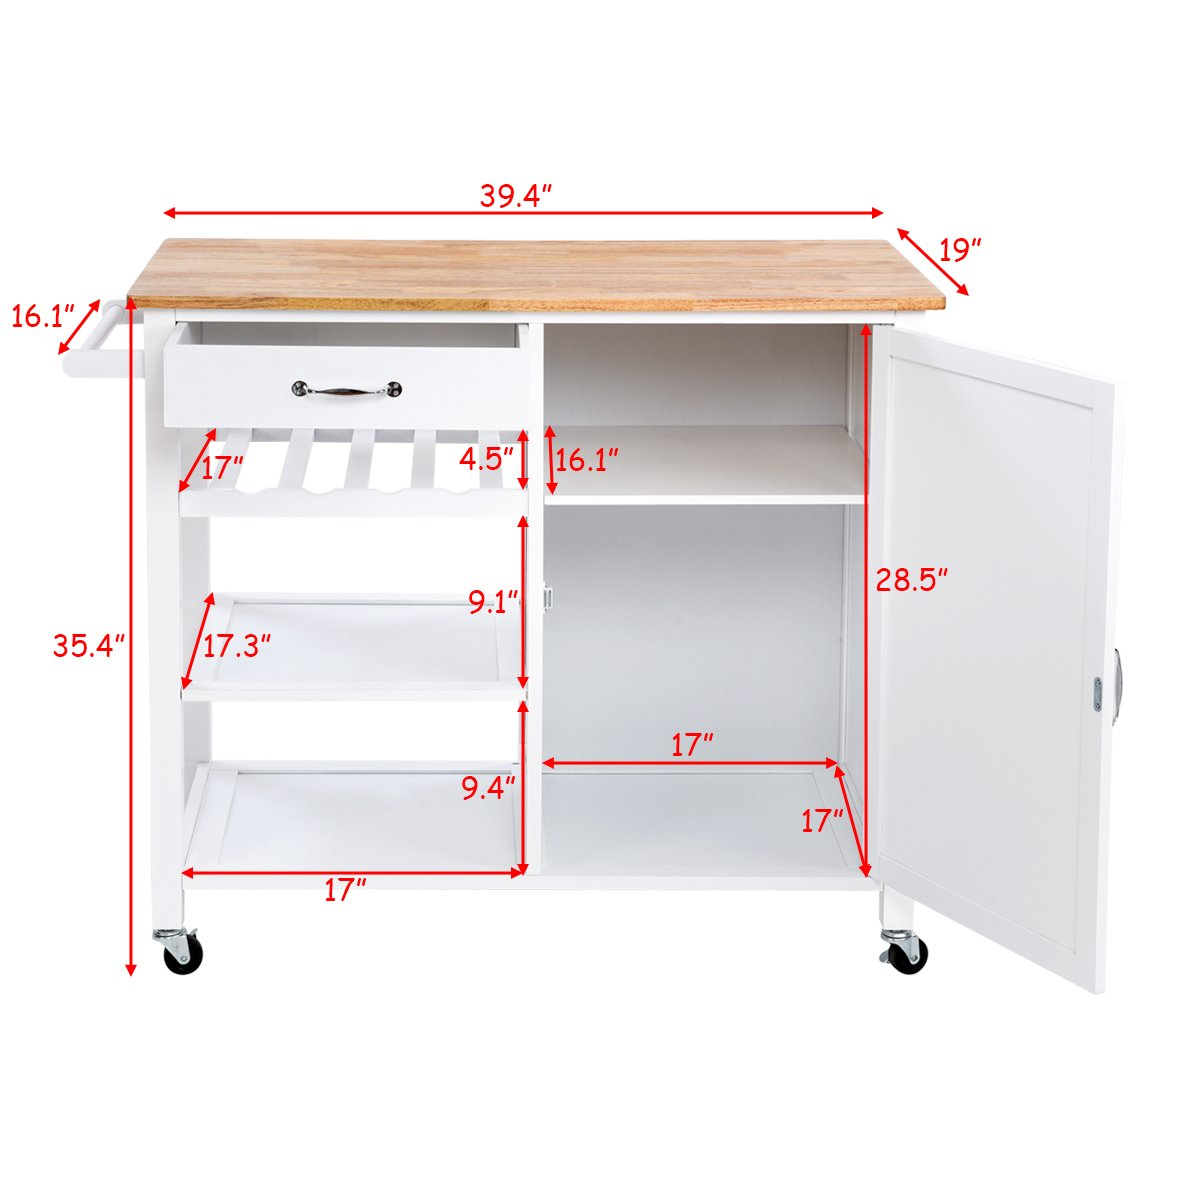 Giantex Kitchen Trolley Cart w/Wheels Rolling Storage Cabinet Wooden Table Multi-Function Island Cart Kitchen Truck (White) by Giantex (Image #7)